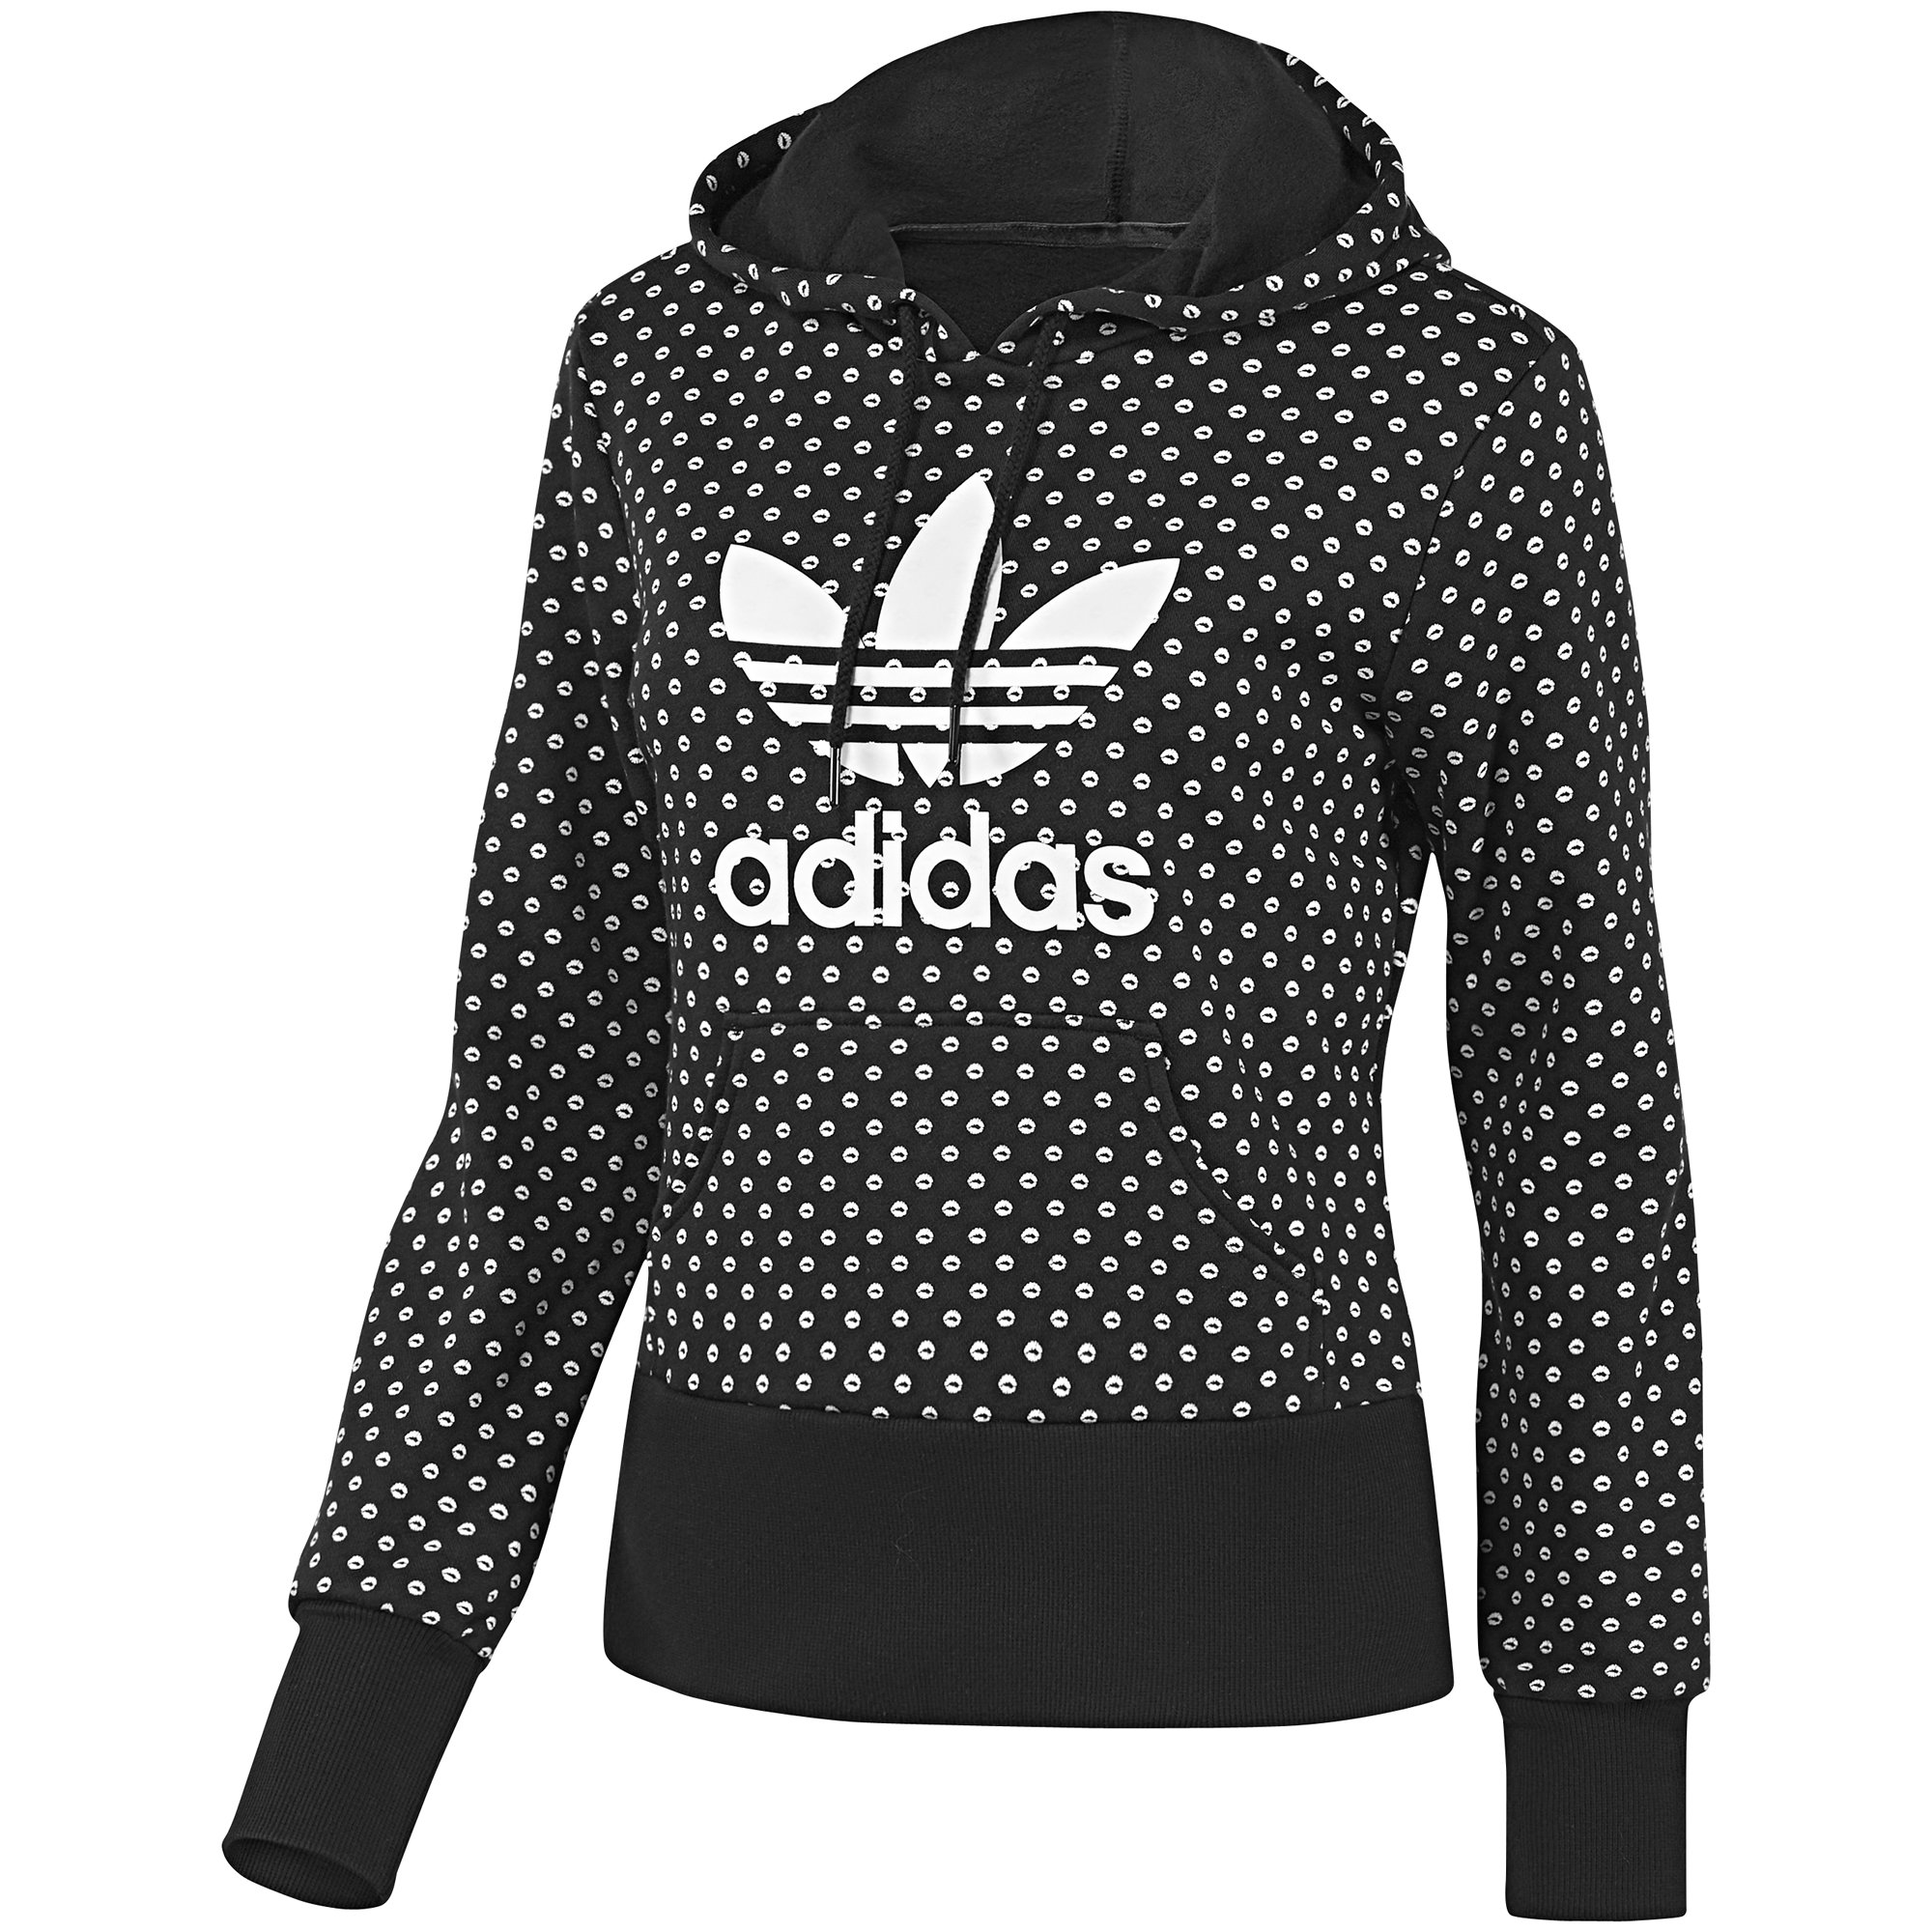 adidas originals trefoil hoodie pullover sweatshirt women various colours ebay. Black Bedroom Furniture Sets. Home Design Ideas